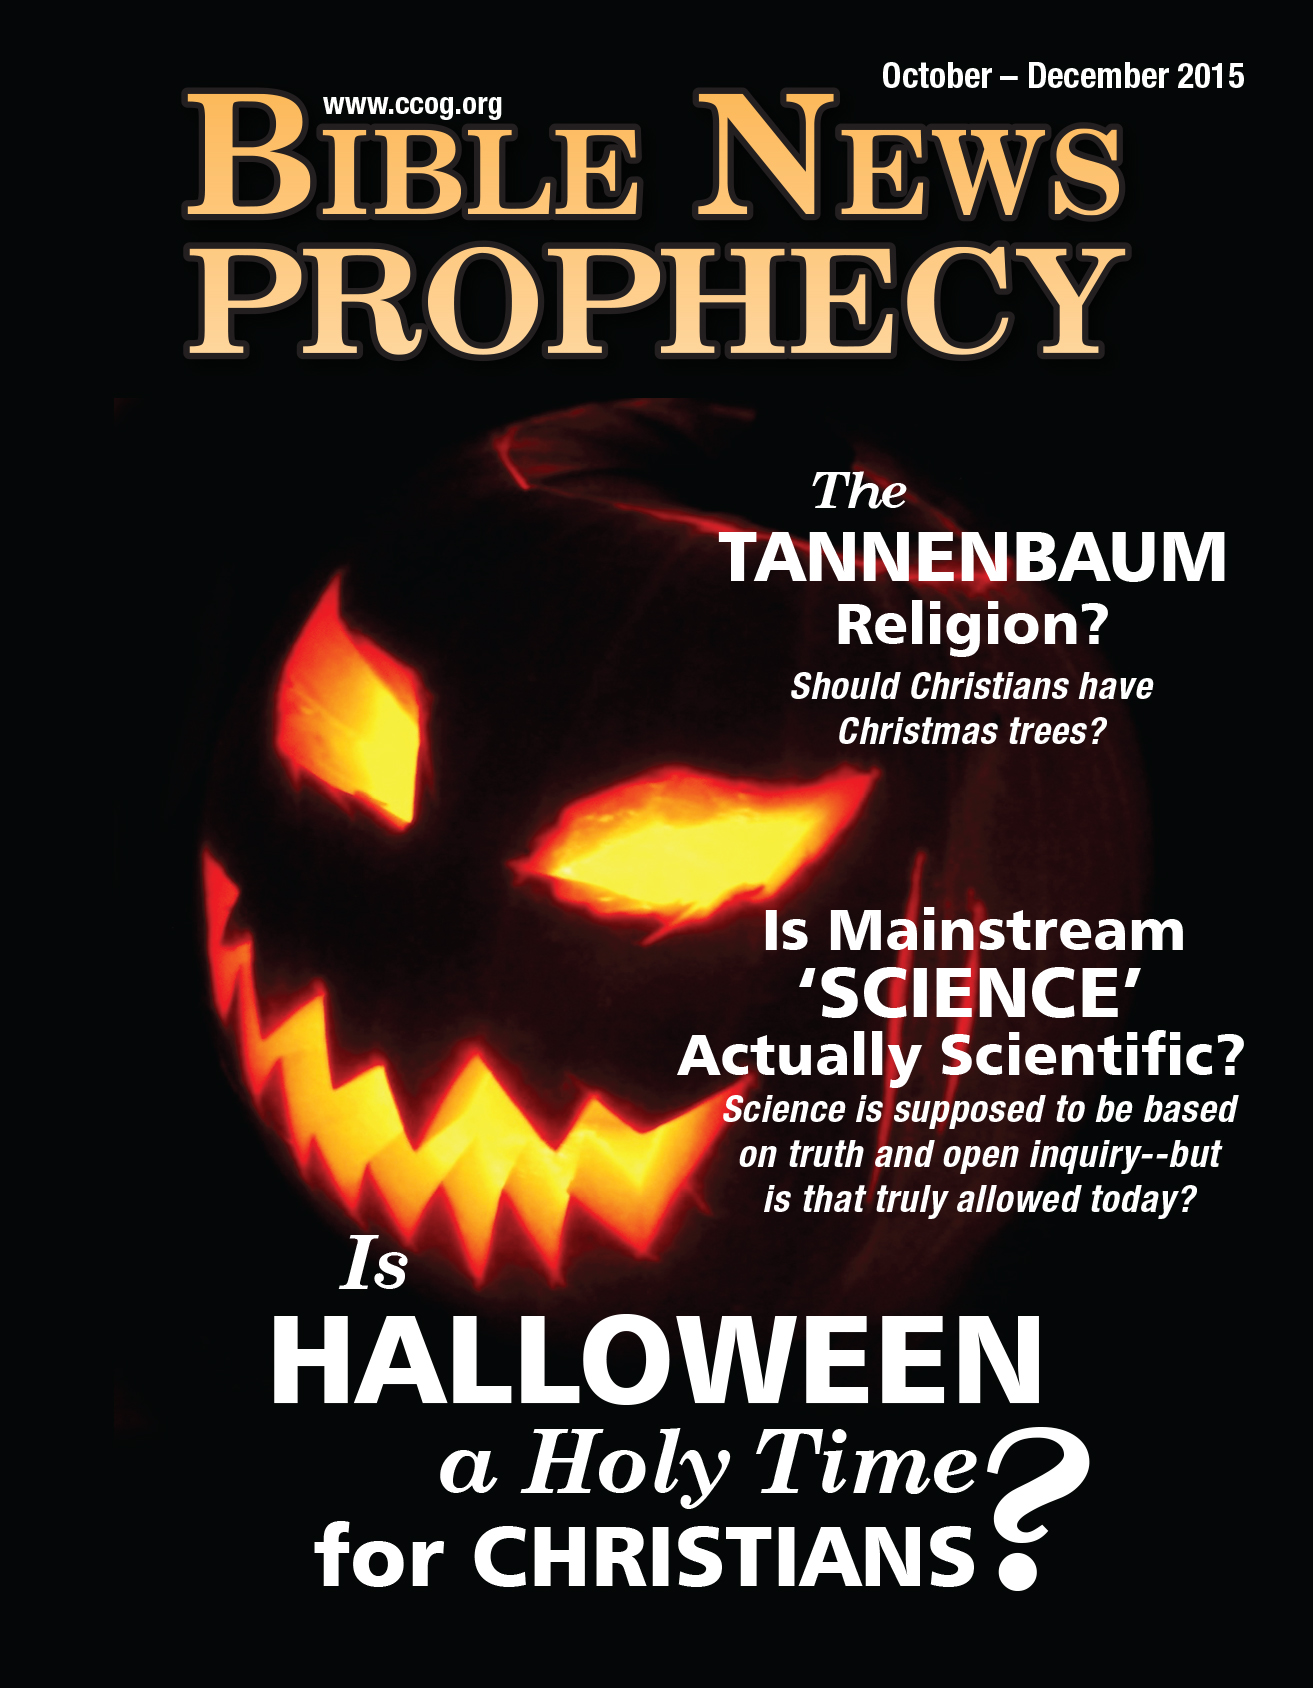 biblenewsprophecy, october – december 2015: is halloween a holy time